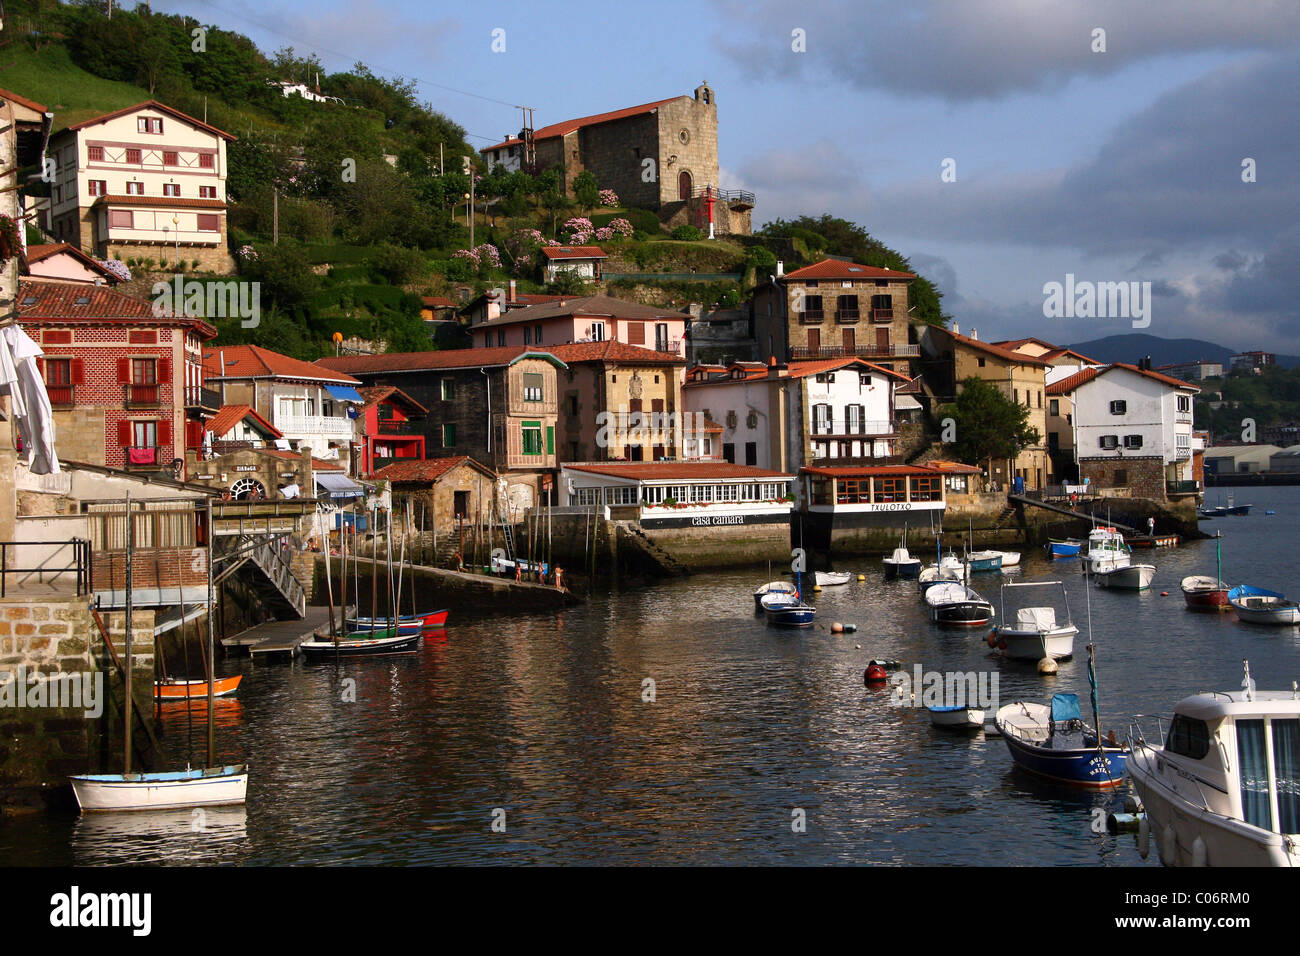 fishing village on the Cantabrian coast, Pasajes de San Juan in Guipuzcoa Basque Country - Stock Image